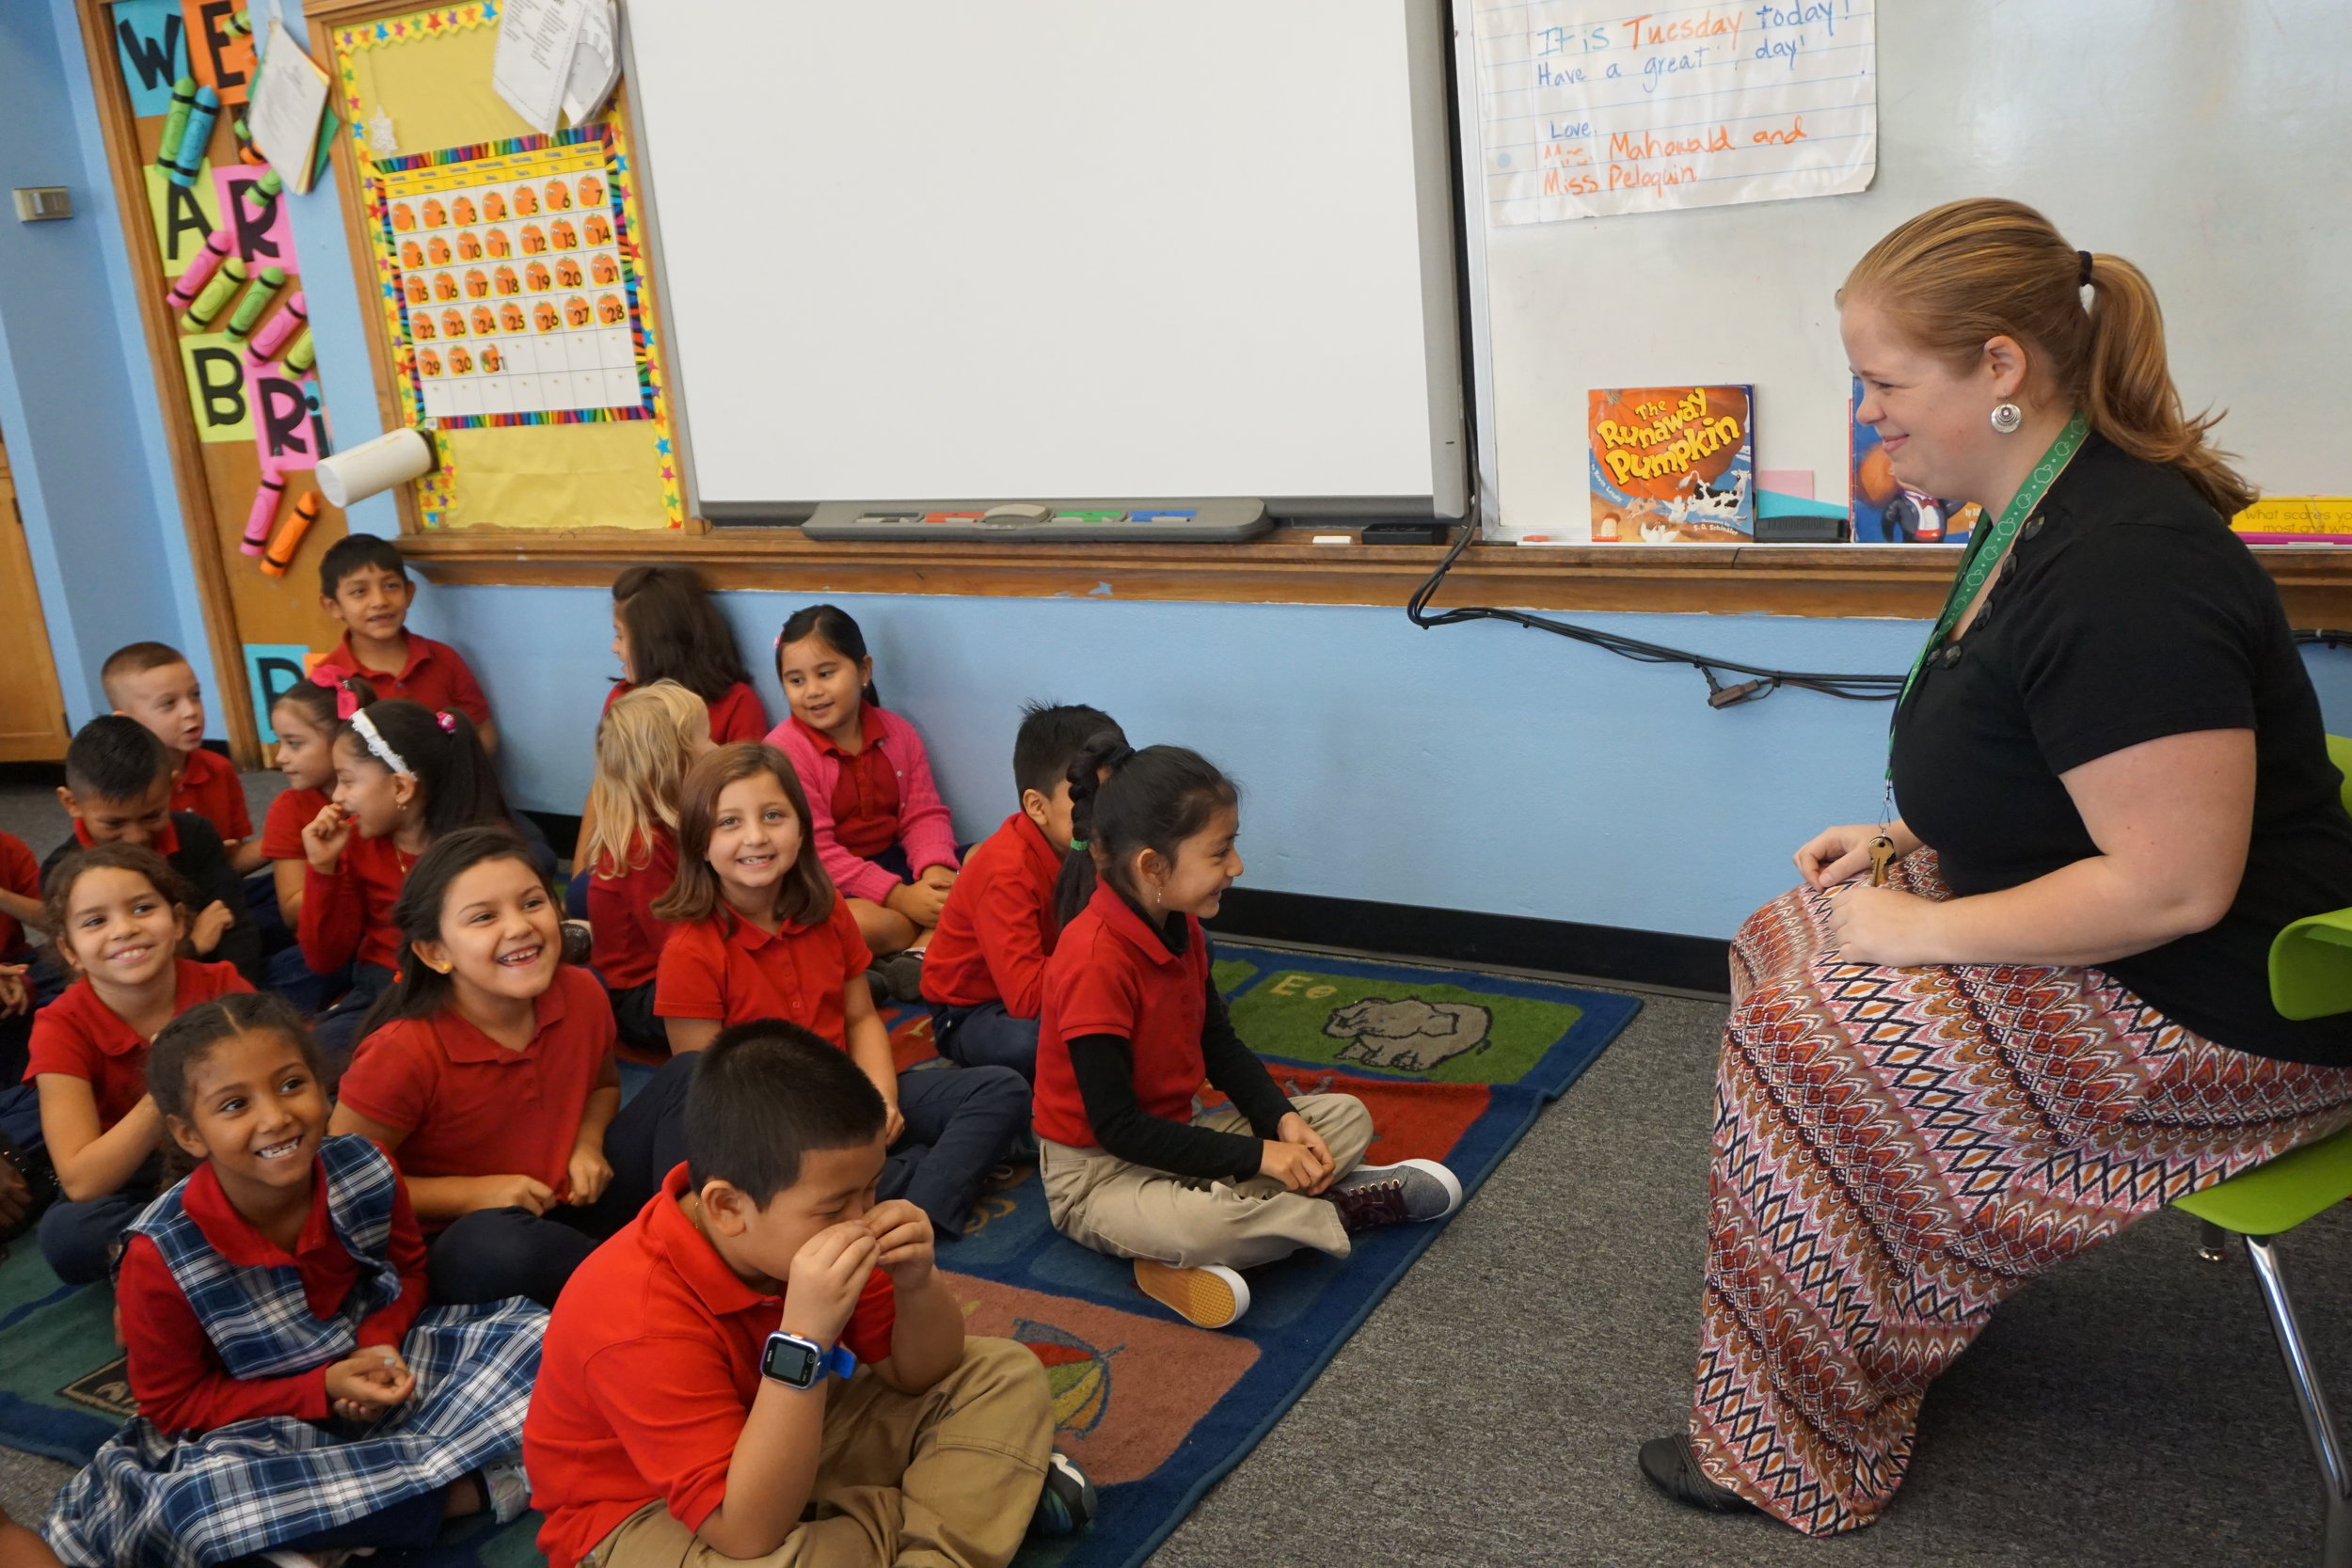 Educator Betsy Peloquin with her class of students at St. John Paul II Catholic Preparatory School.